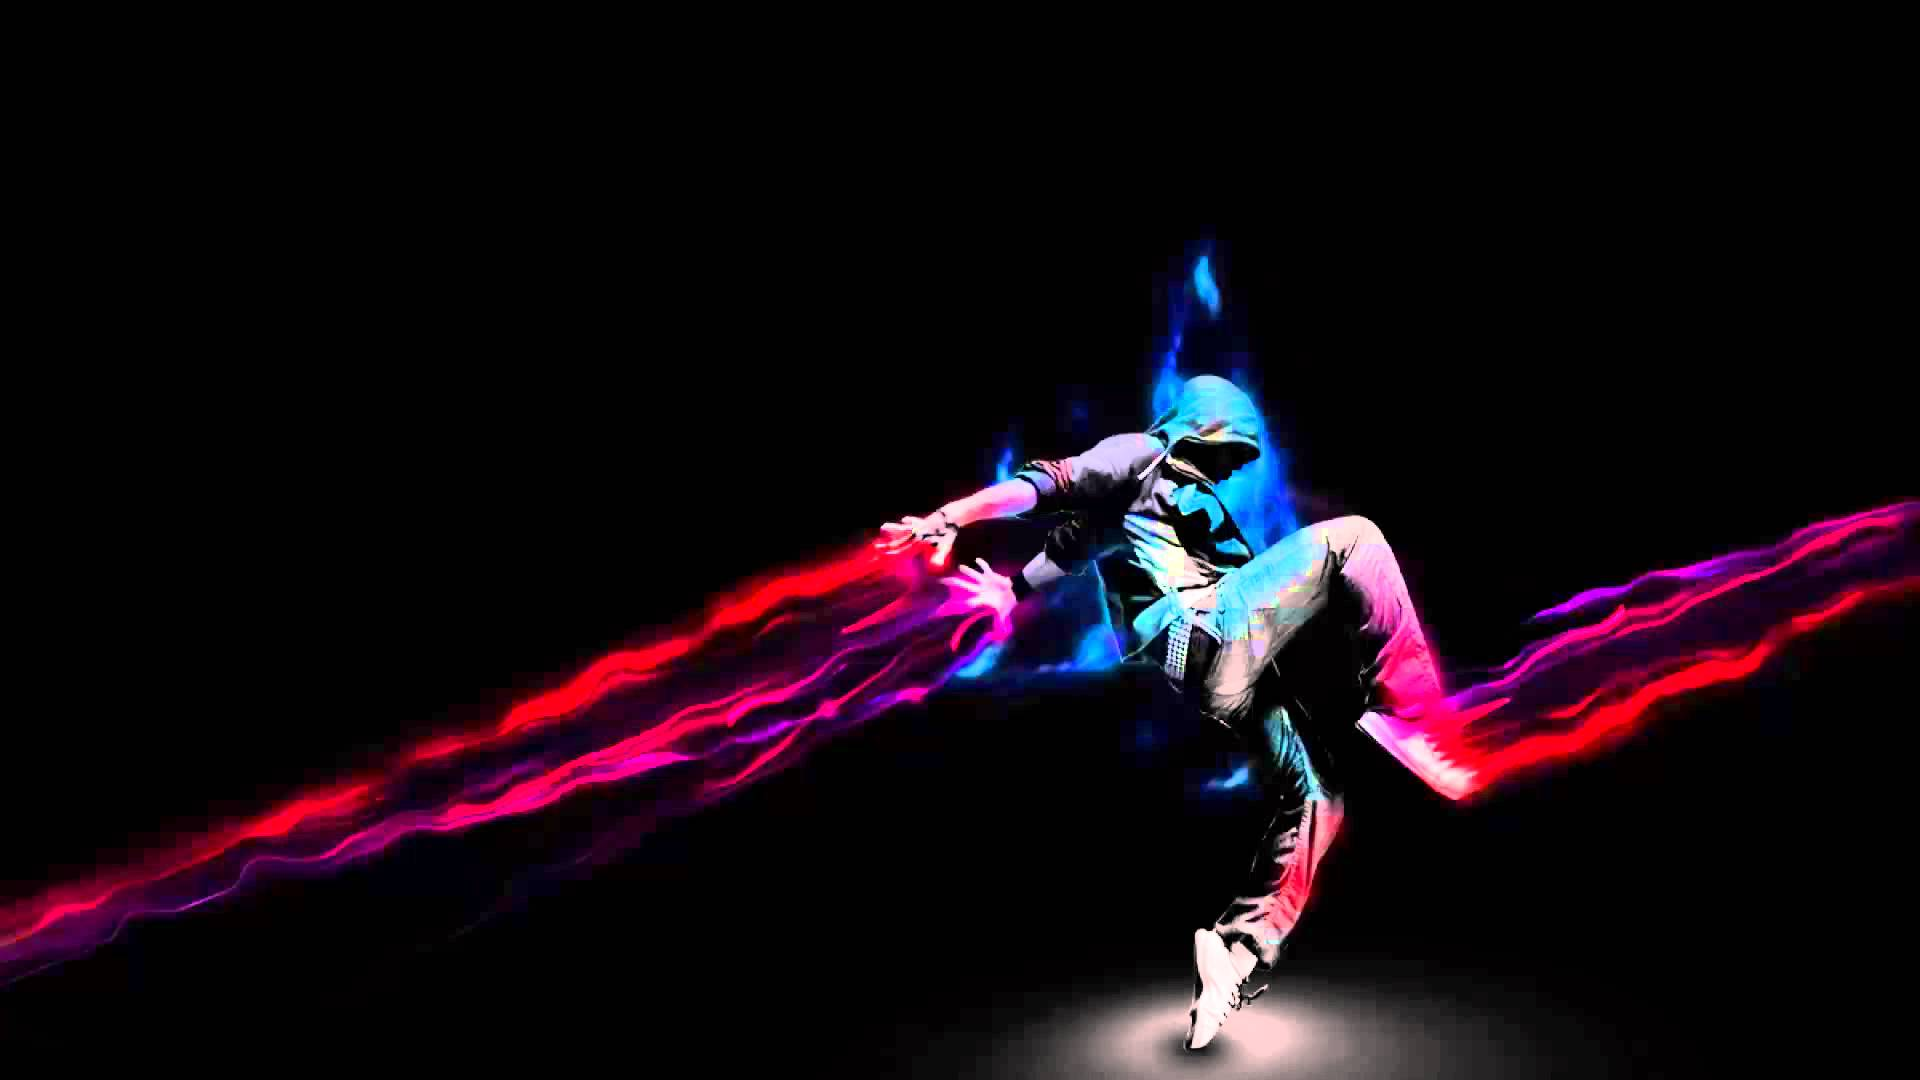 Hip Hop Dance Wallpapers HD - Wallpaper Cave